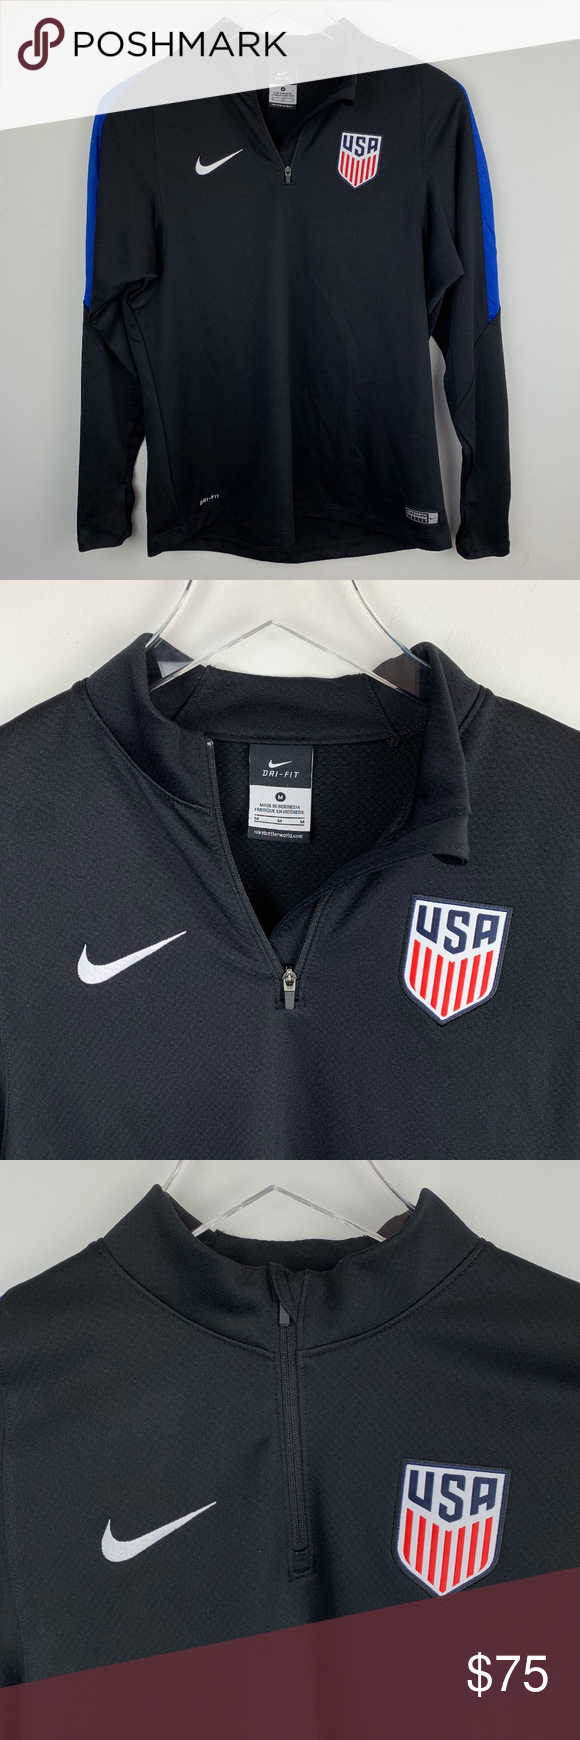 3a767ab8b6d9 NIKE — RARE Dri-FIT USWNT Soccer Zip Track Jacket NEW WITHOUT TAGS VERY RARE